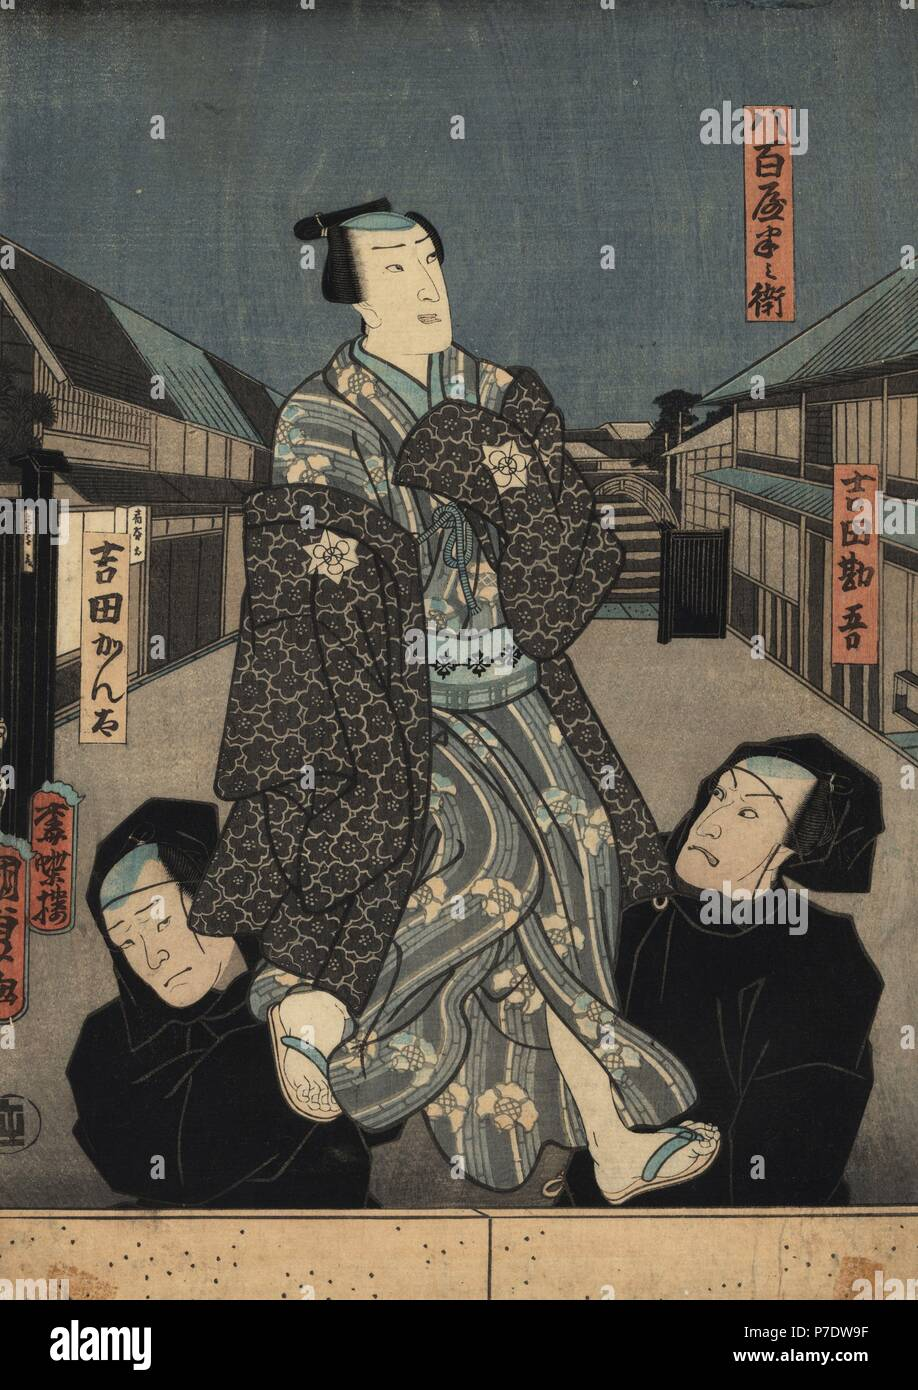 Puppet in kimono being manipulated by two bunraku puppeteers in black robes. Woodblock ukiyo-e print by Utagawa Kunisada II, Tokyo, 1850s. From a series of illustrations of popular bunraku plays, this showing the Yaoya Oshichi. - Stock Image